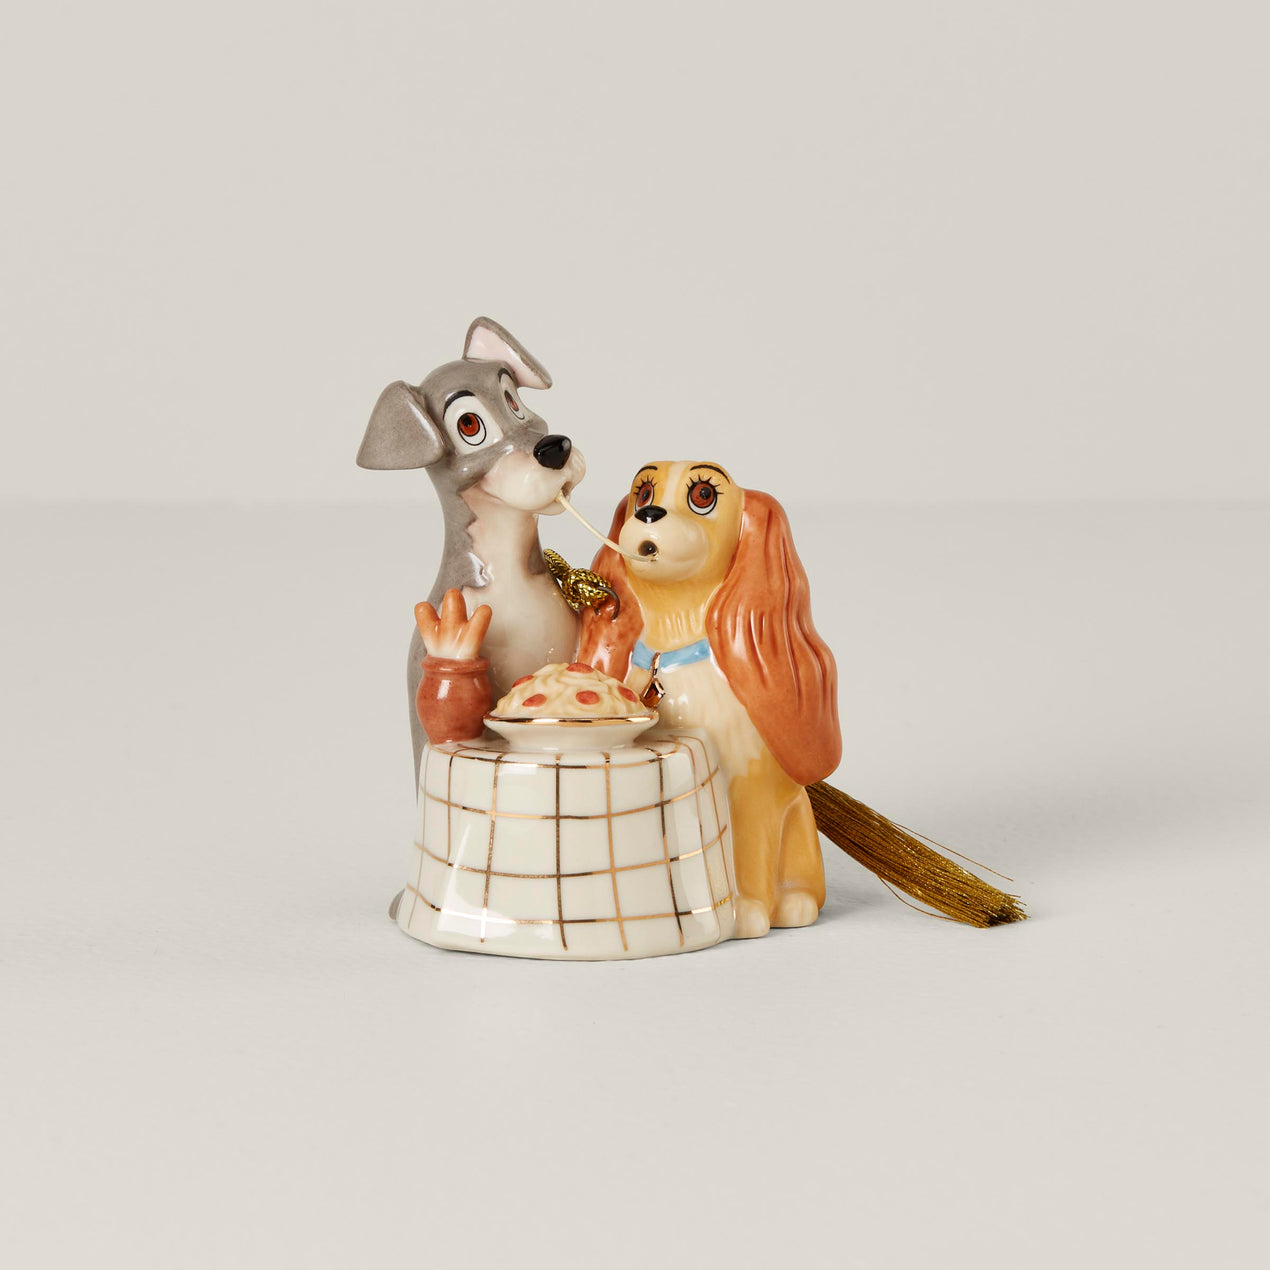 Lady The Tramp Ornament Lenox Corporation